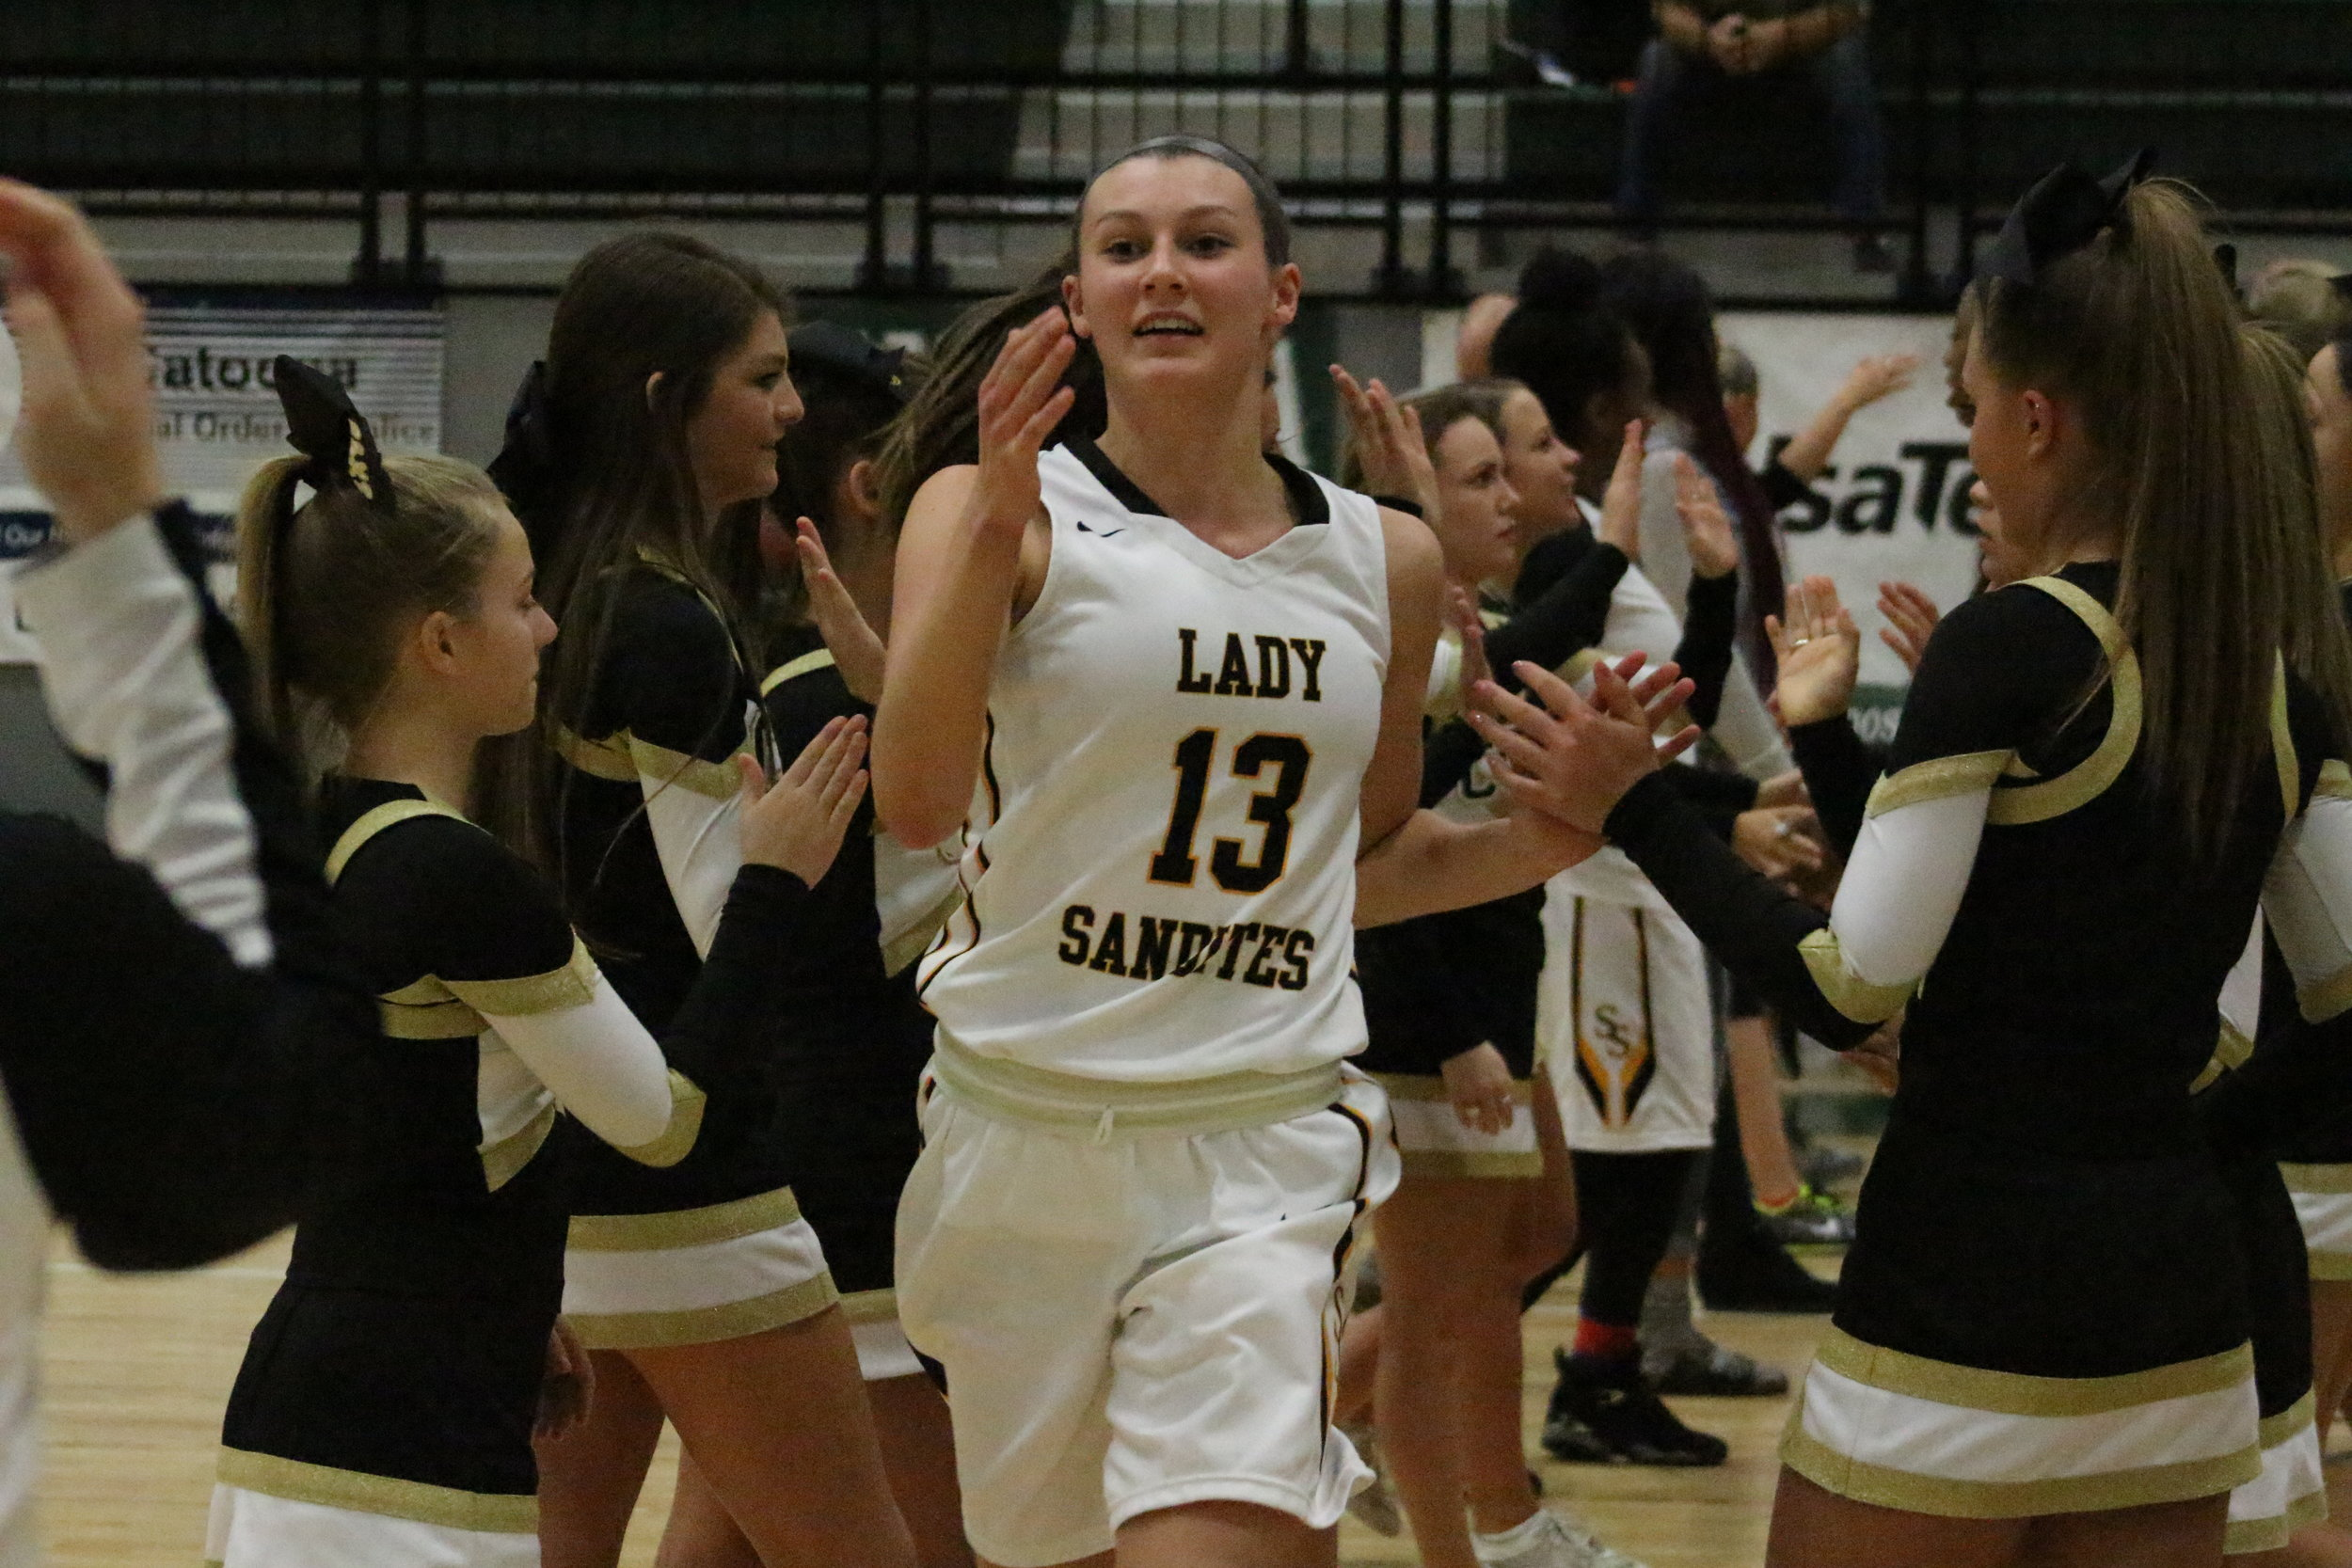 Holly Kersgieter enters the court prior to the Area Championship game 160303 (Morgan Miller).JPG